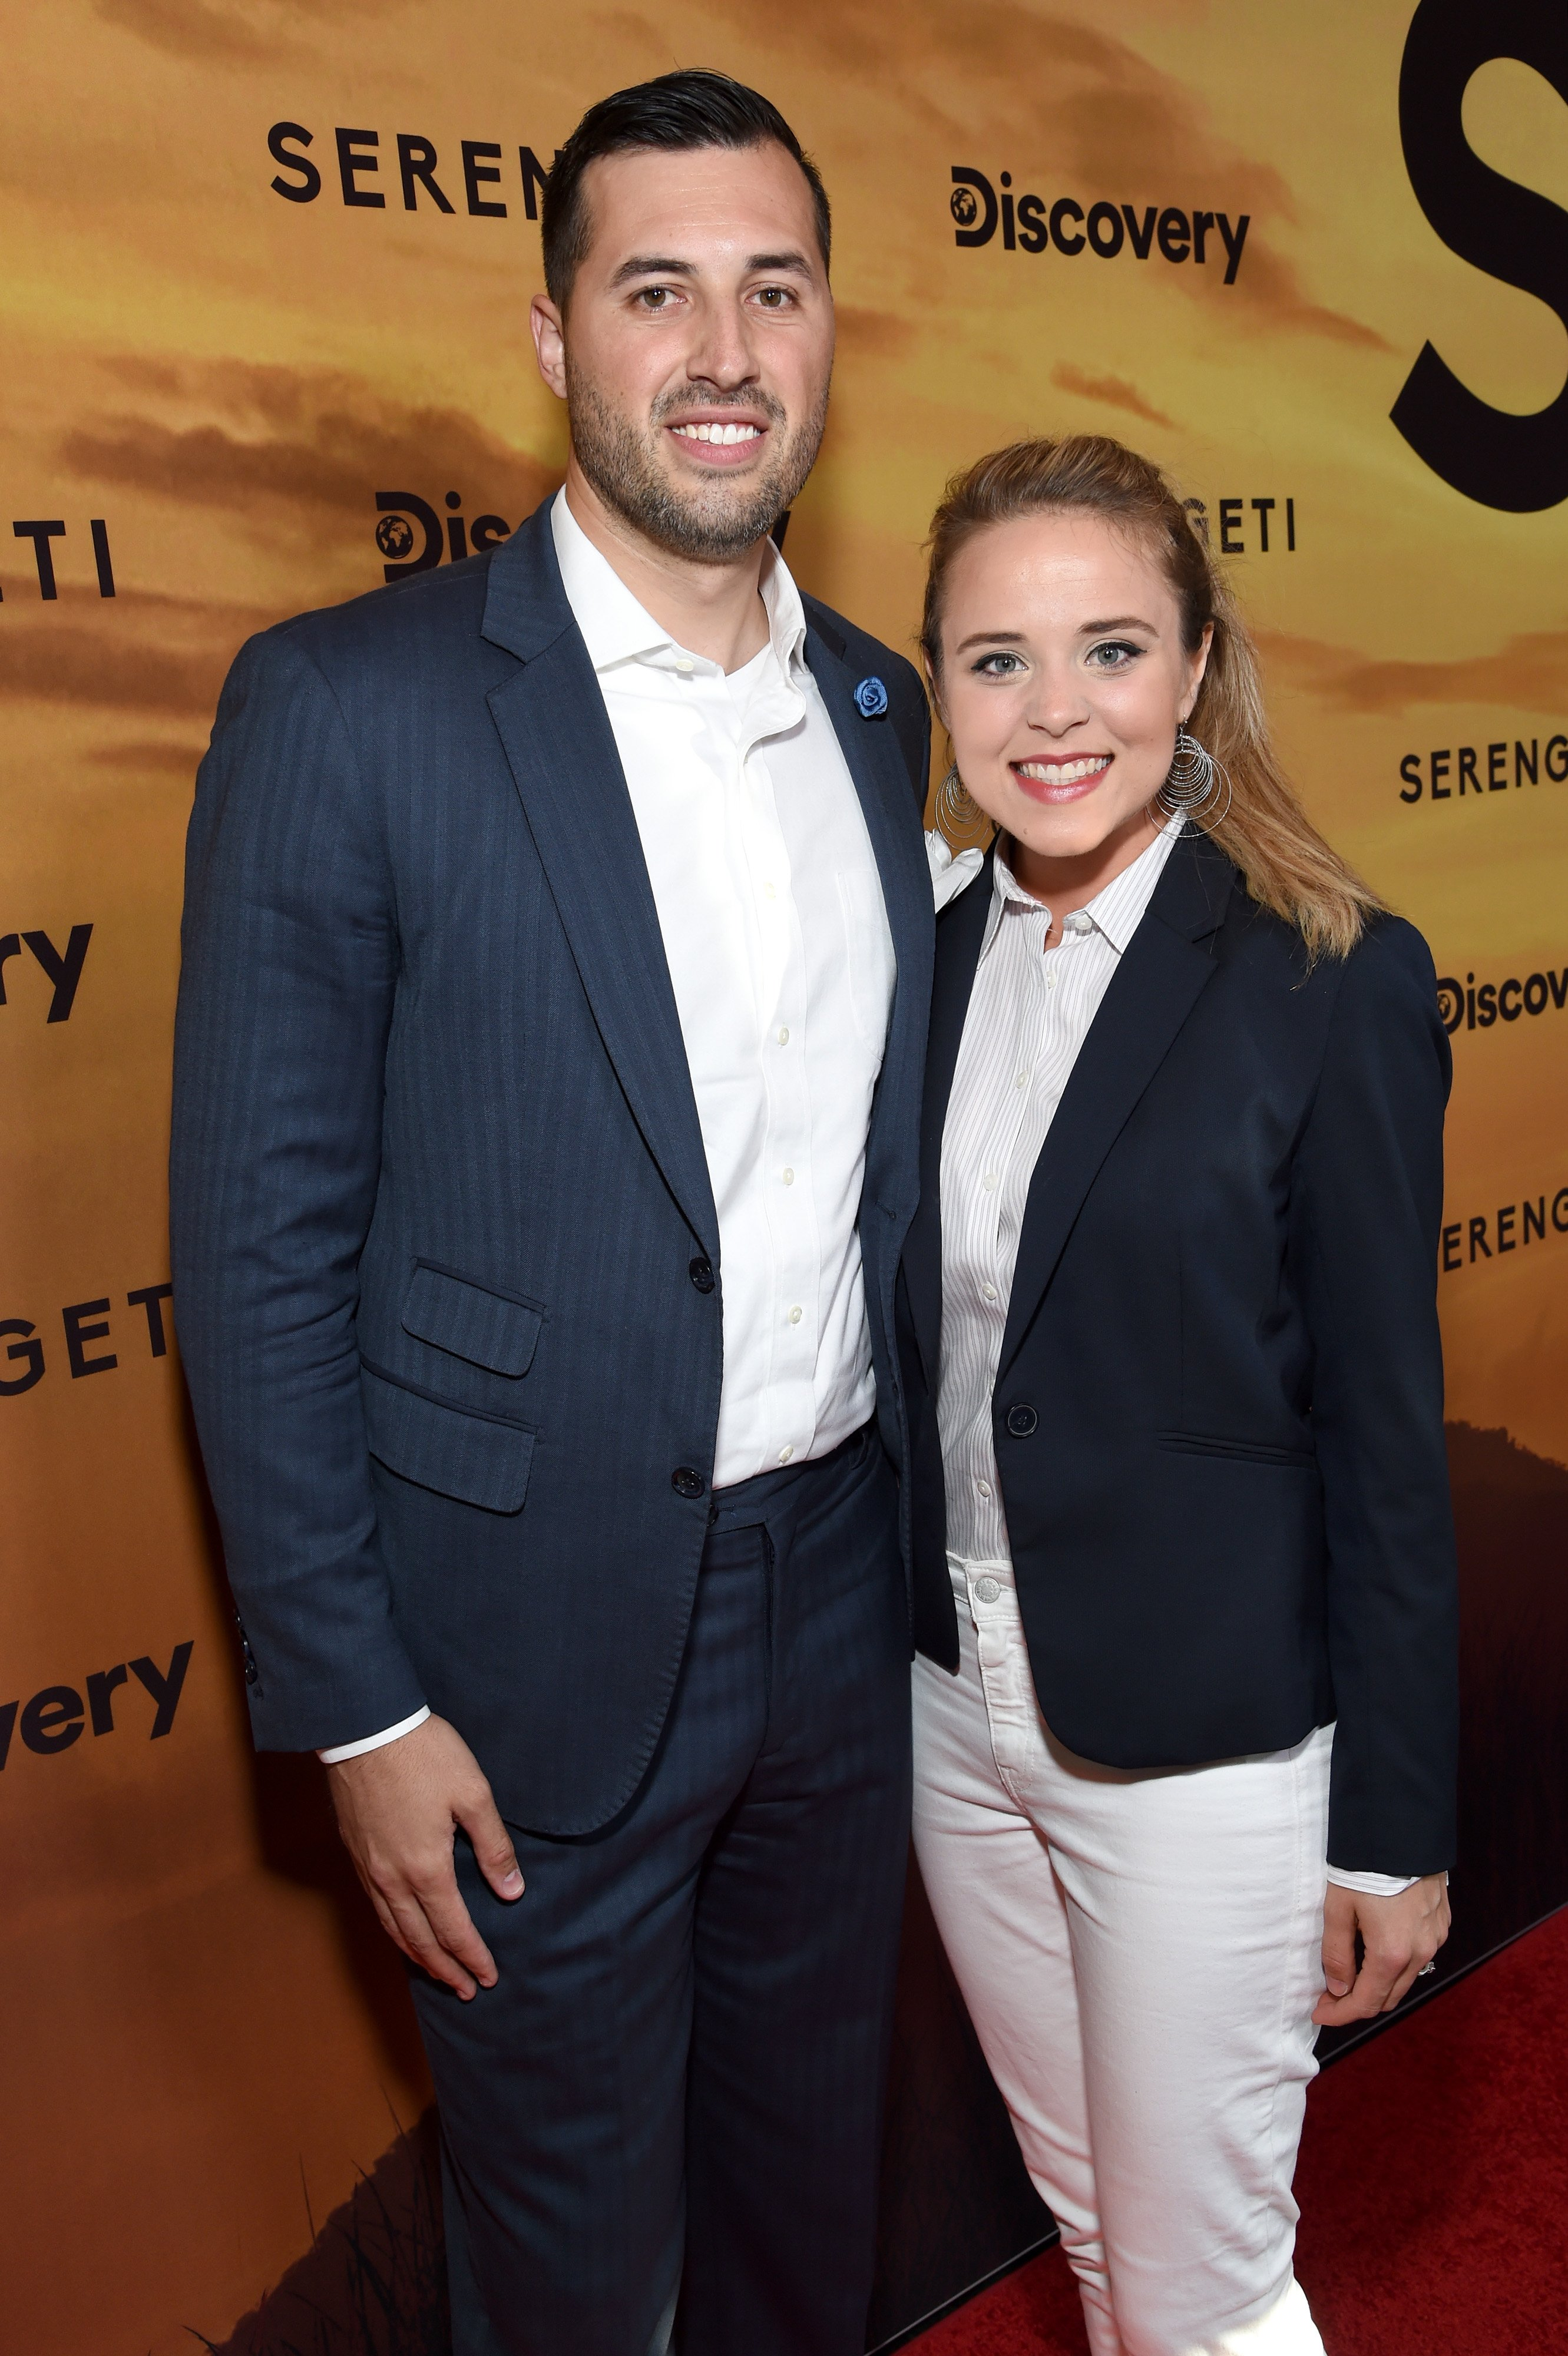 """Jeremy Vuolo and Jinger Duggar attend the premiere of """"Serengeti"""" in Beverly Hills, July, 2019.   Photo: Getty Images."""